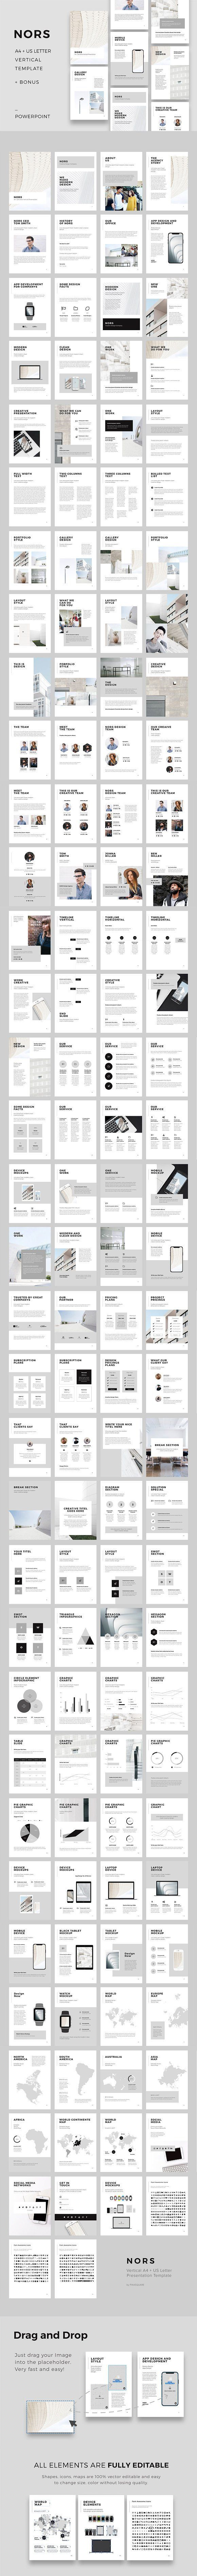 763 best powerpoint templates images on pinterest creative nors vertical powerpoint 20 photos alramifo Choice Image